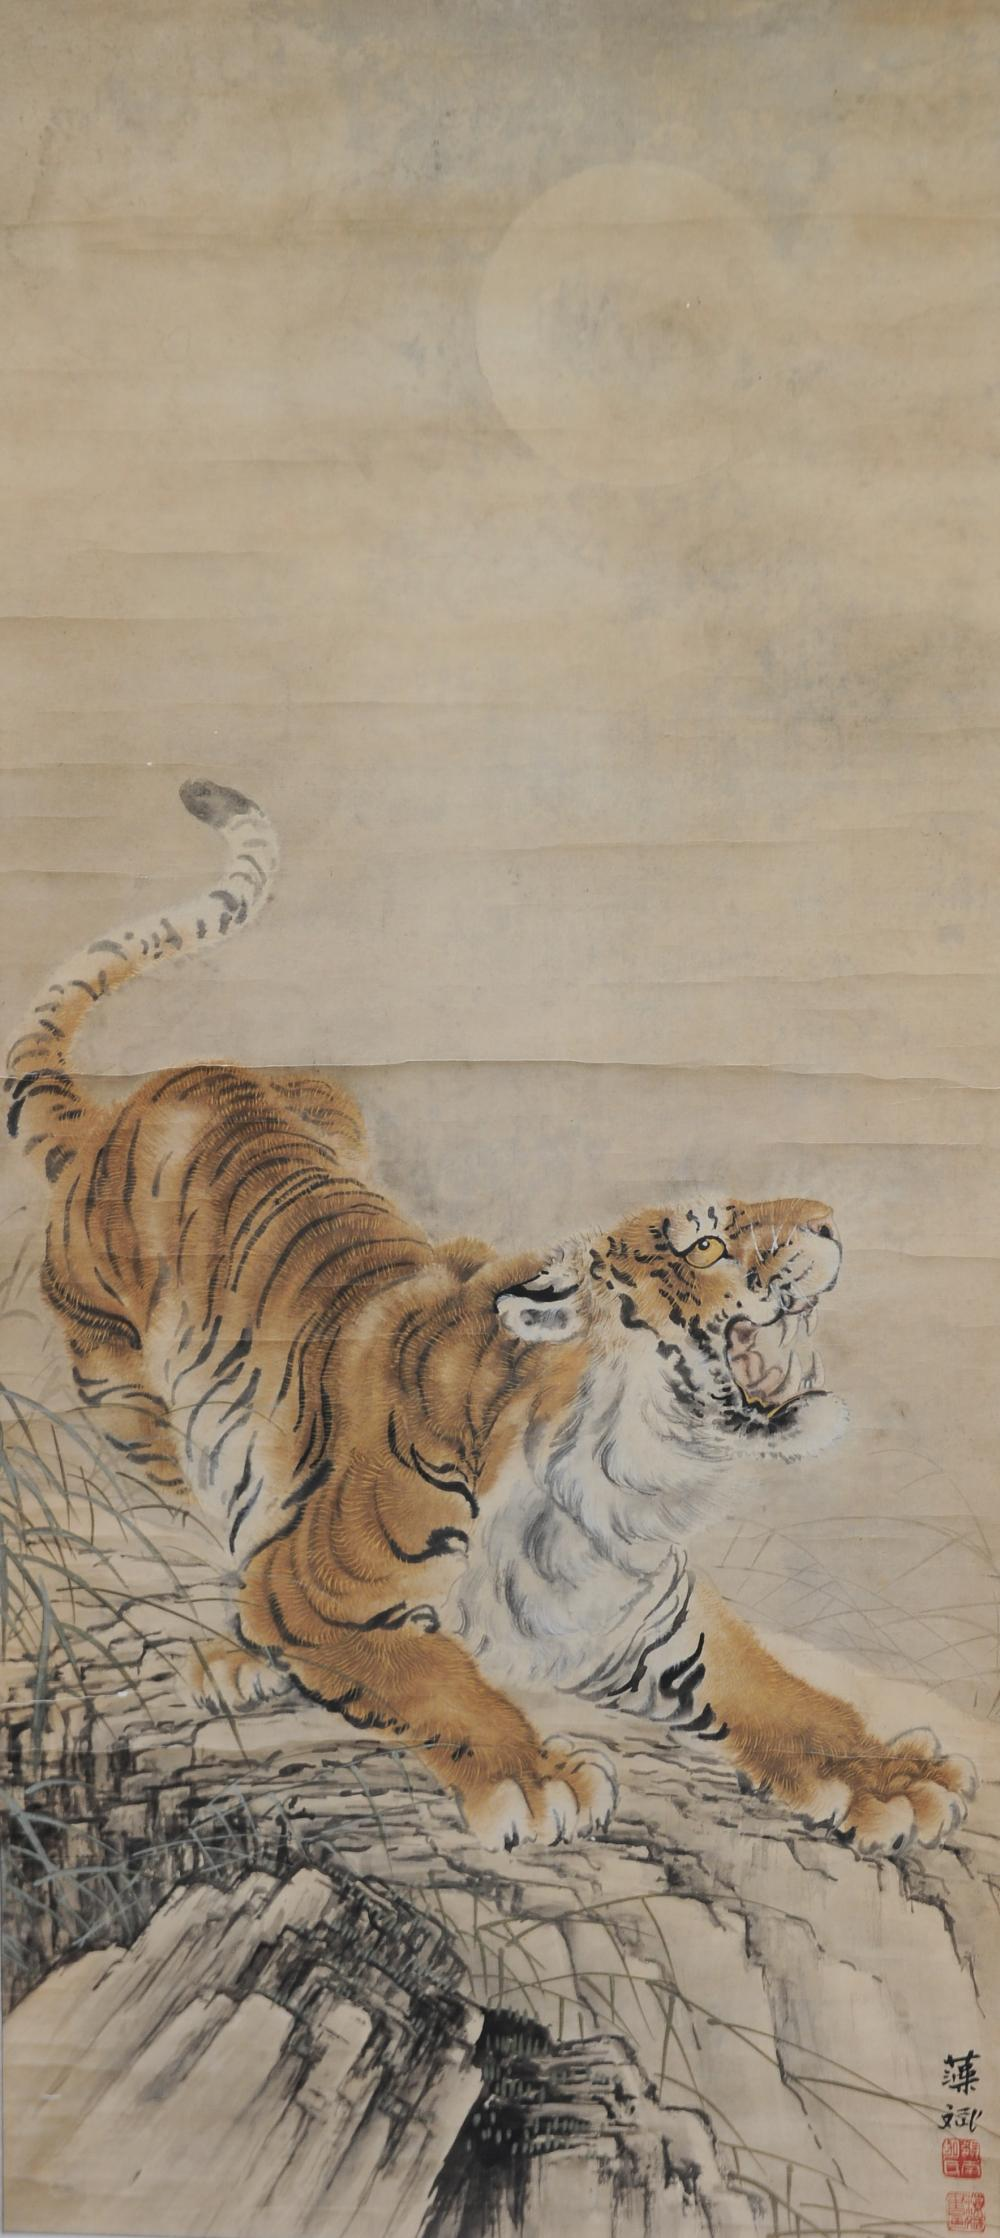 CHINESE PAINTING OF A TIGER BY WU ZHAOBING